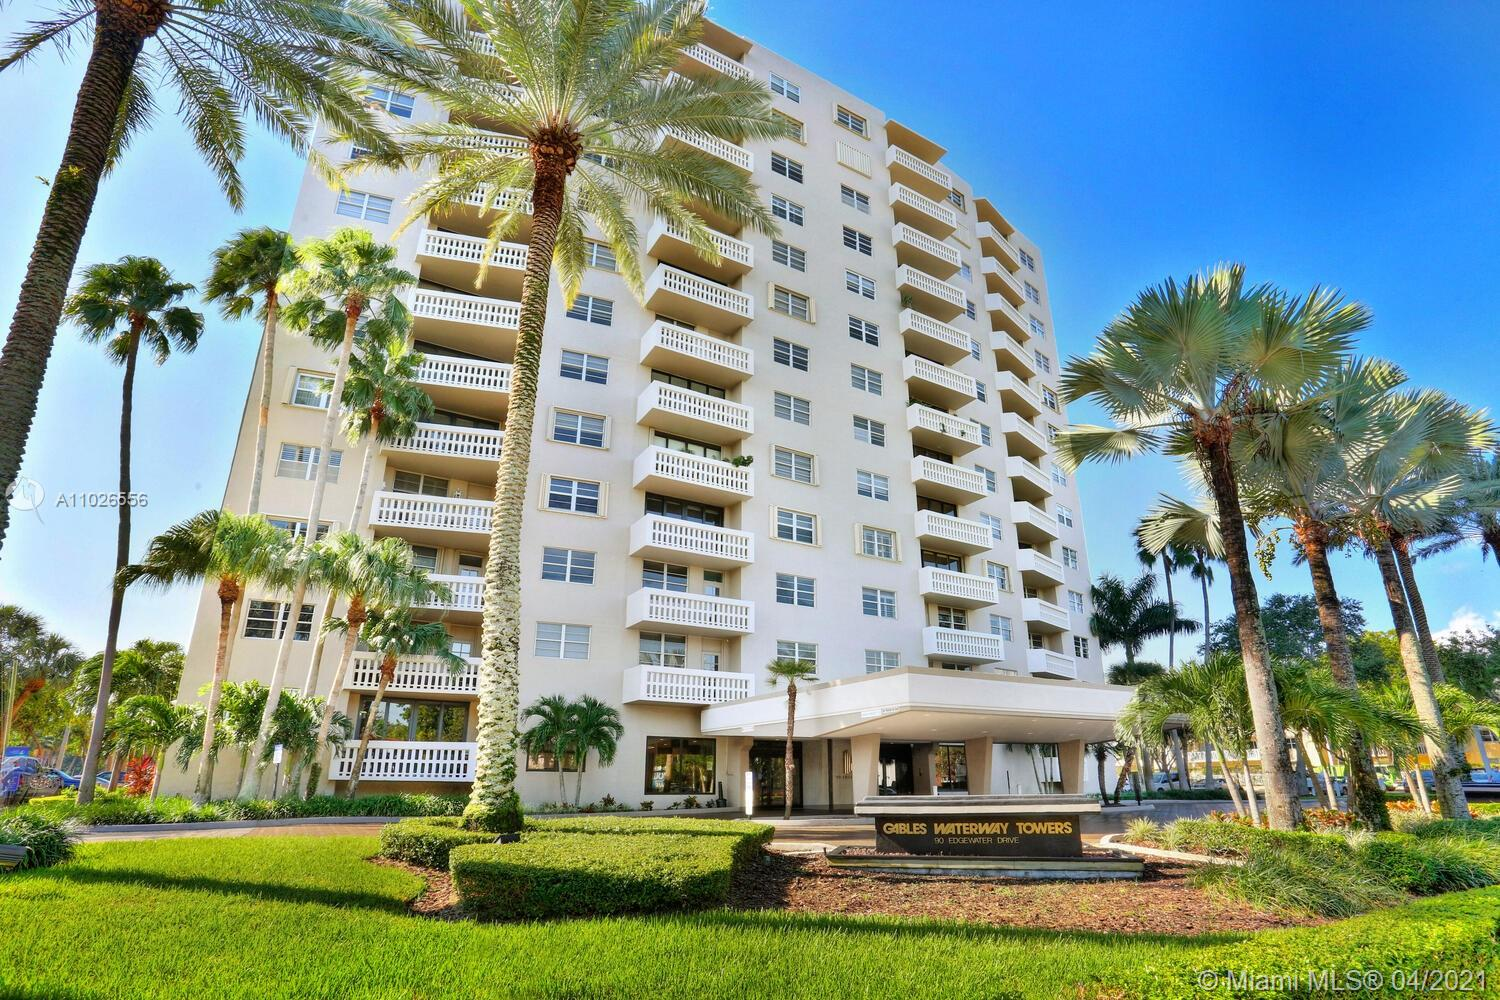 Gables Waterway #1122 - 90 Edgewater Dr #1122, Coral Gables, FL 33133